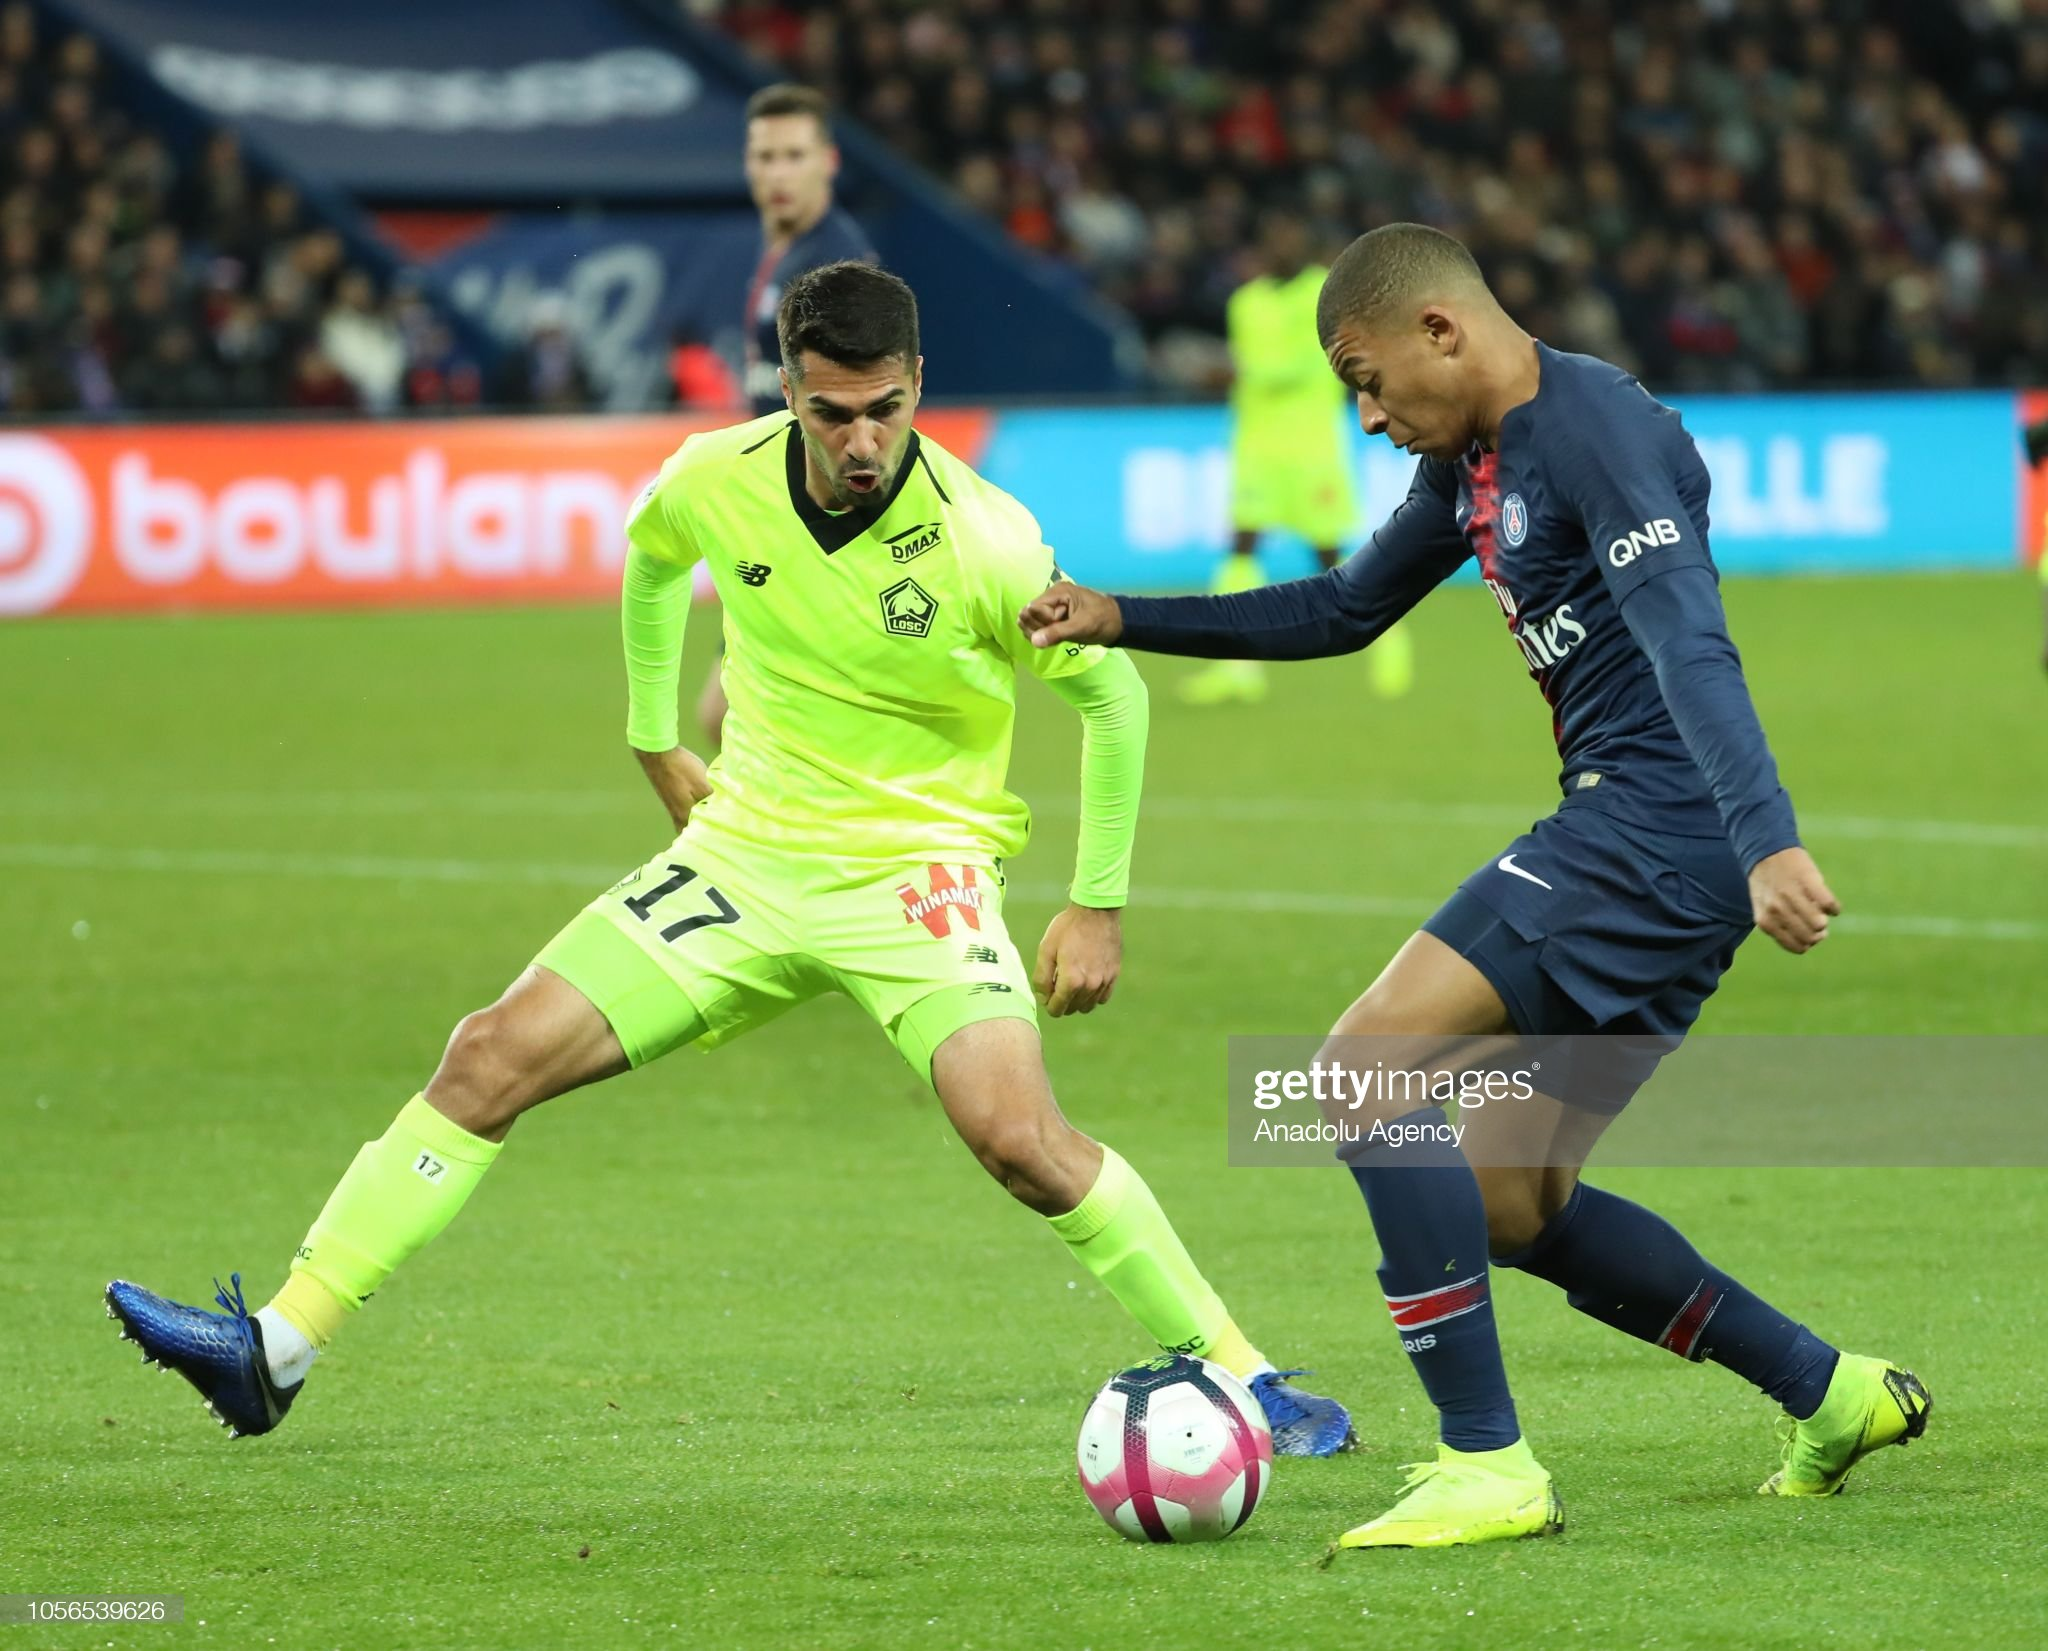 PSG V Lille preview, prediction and odds